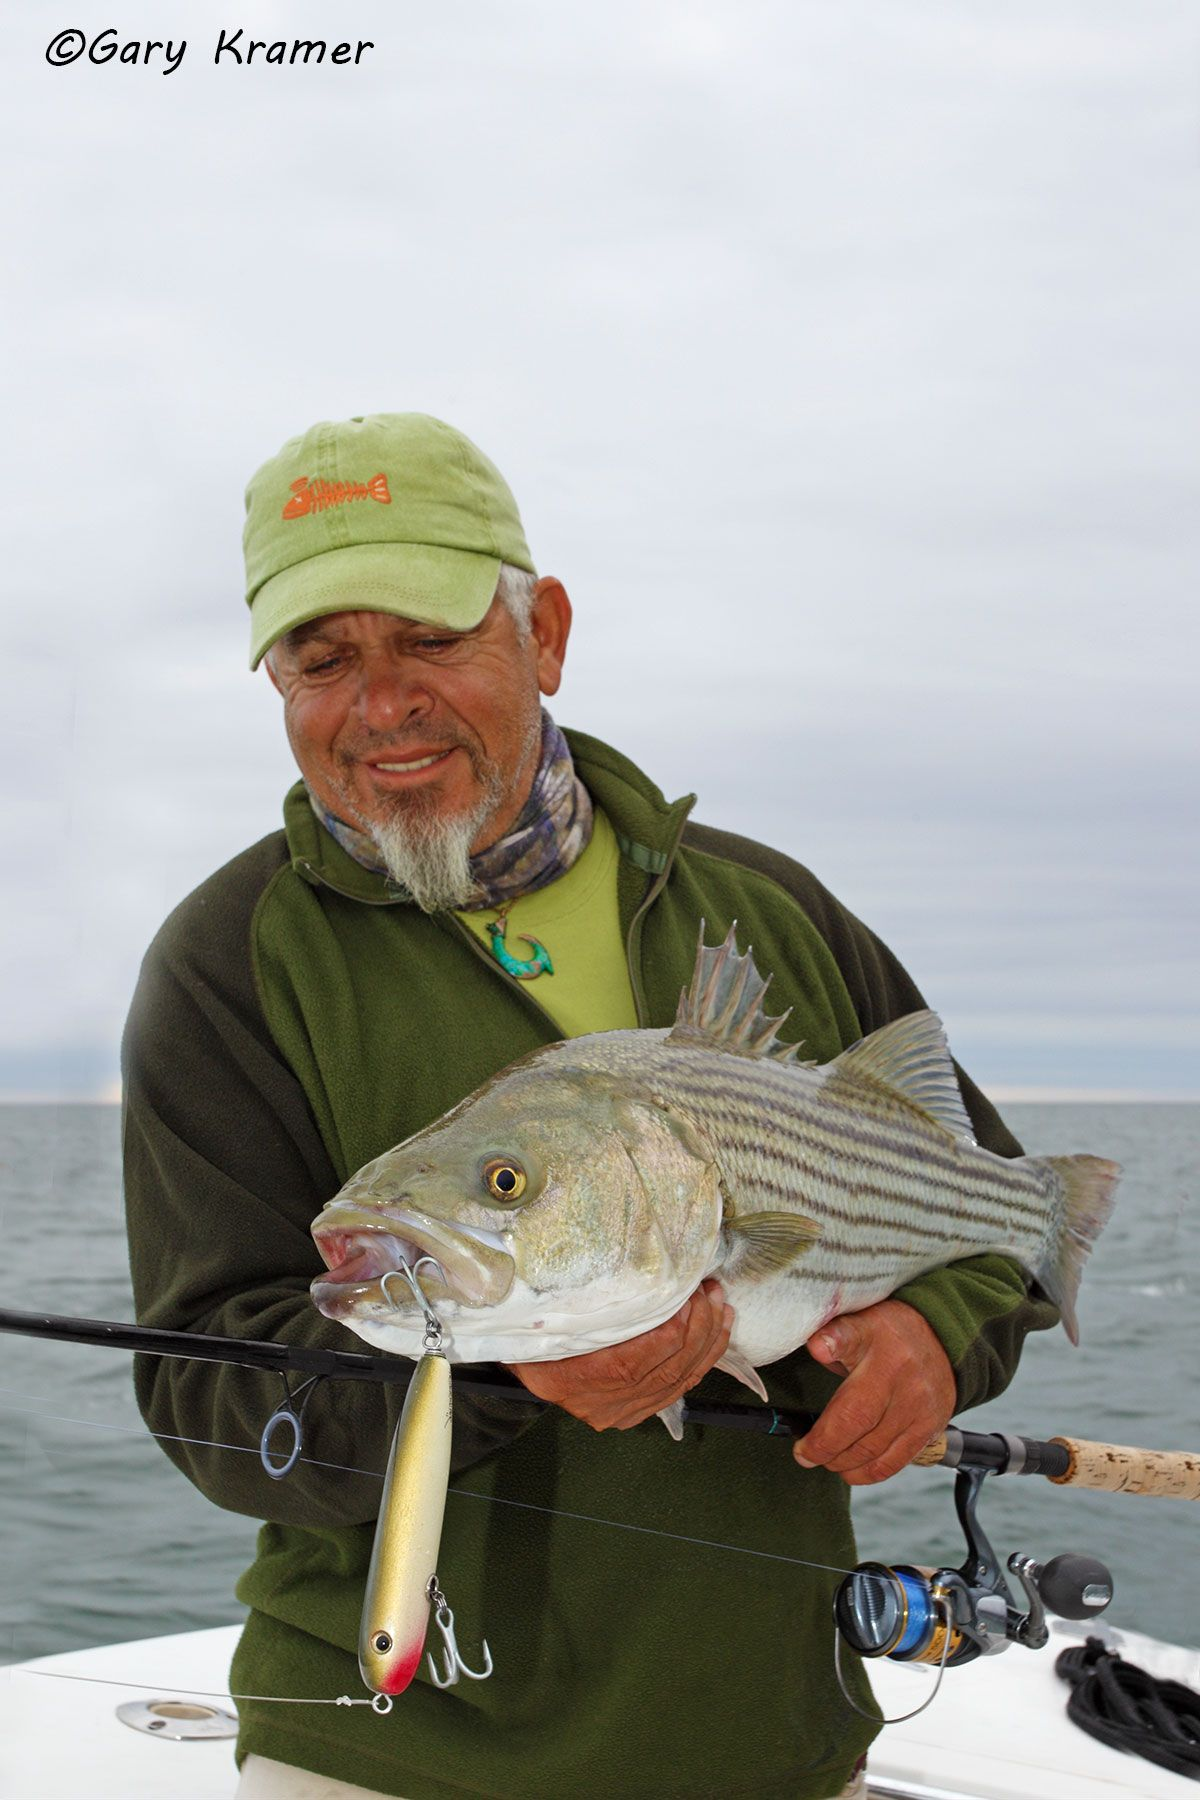 Angler (Tom Cornicelli) w/Striped Bass - NFSb#015d